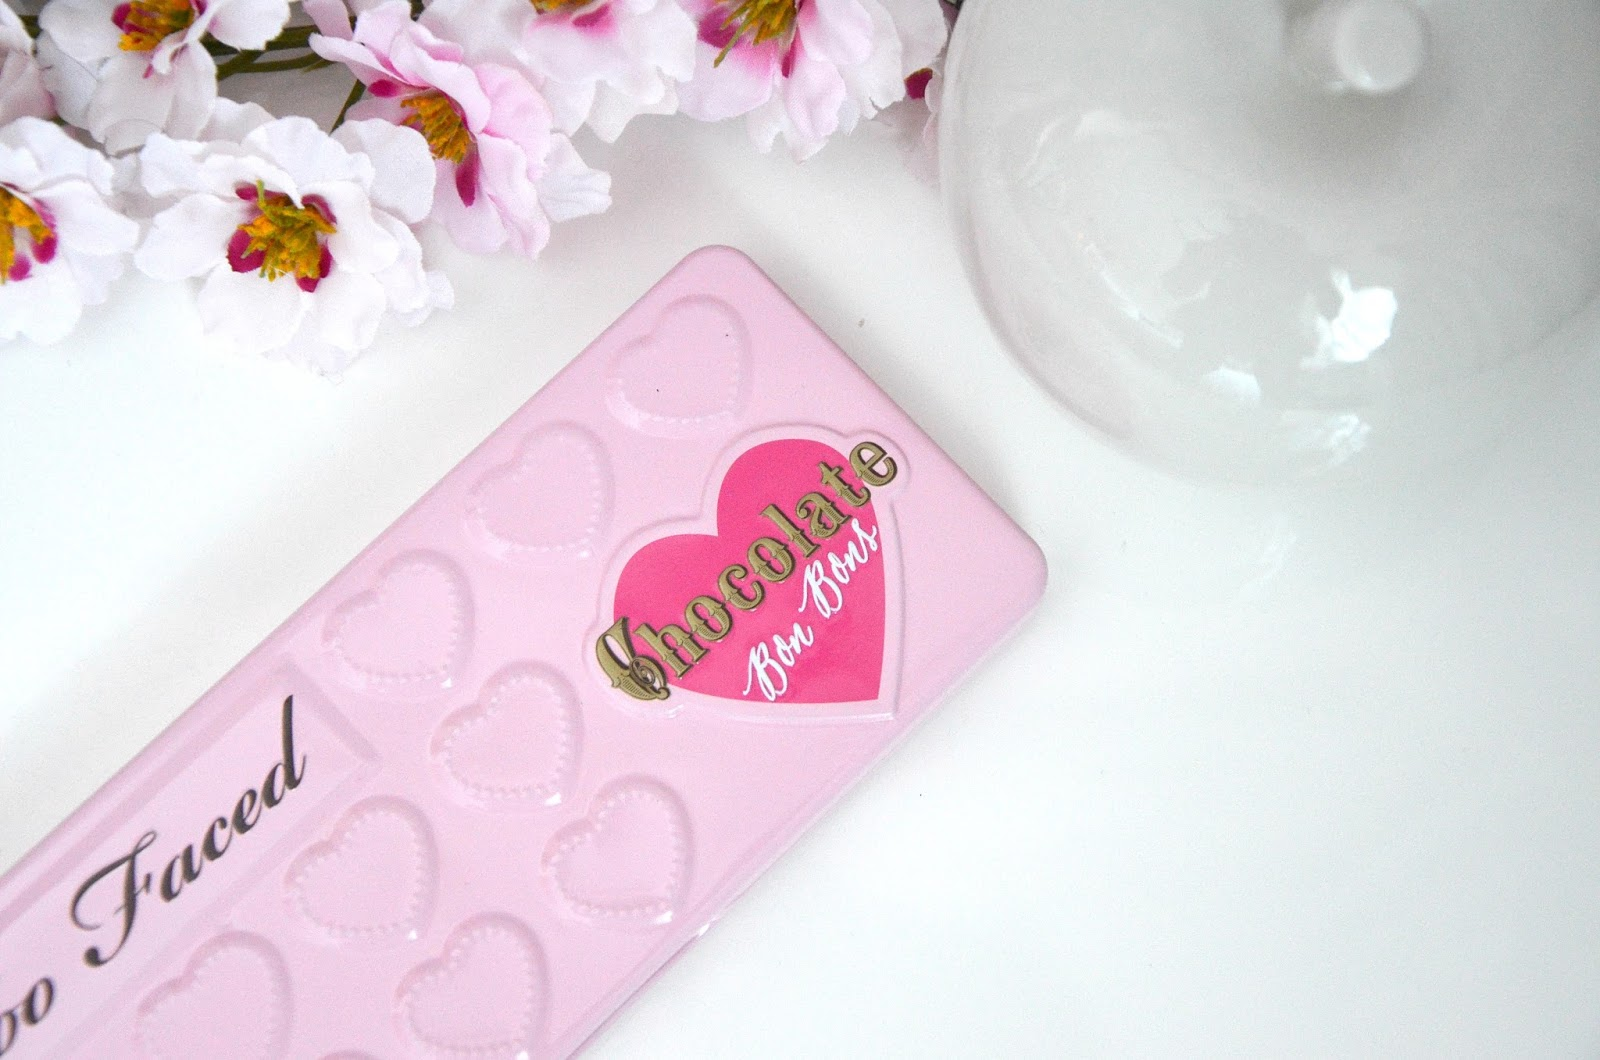 Chcolate bonbons Too Faced